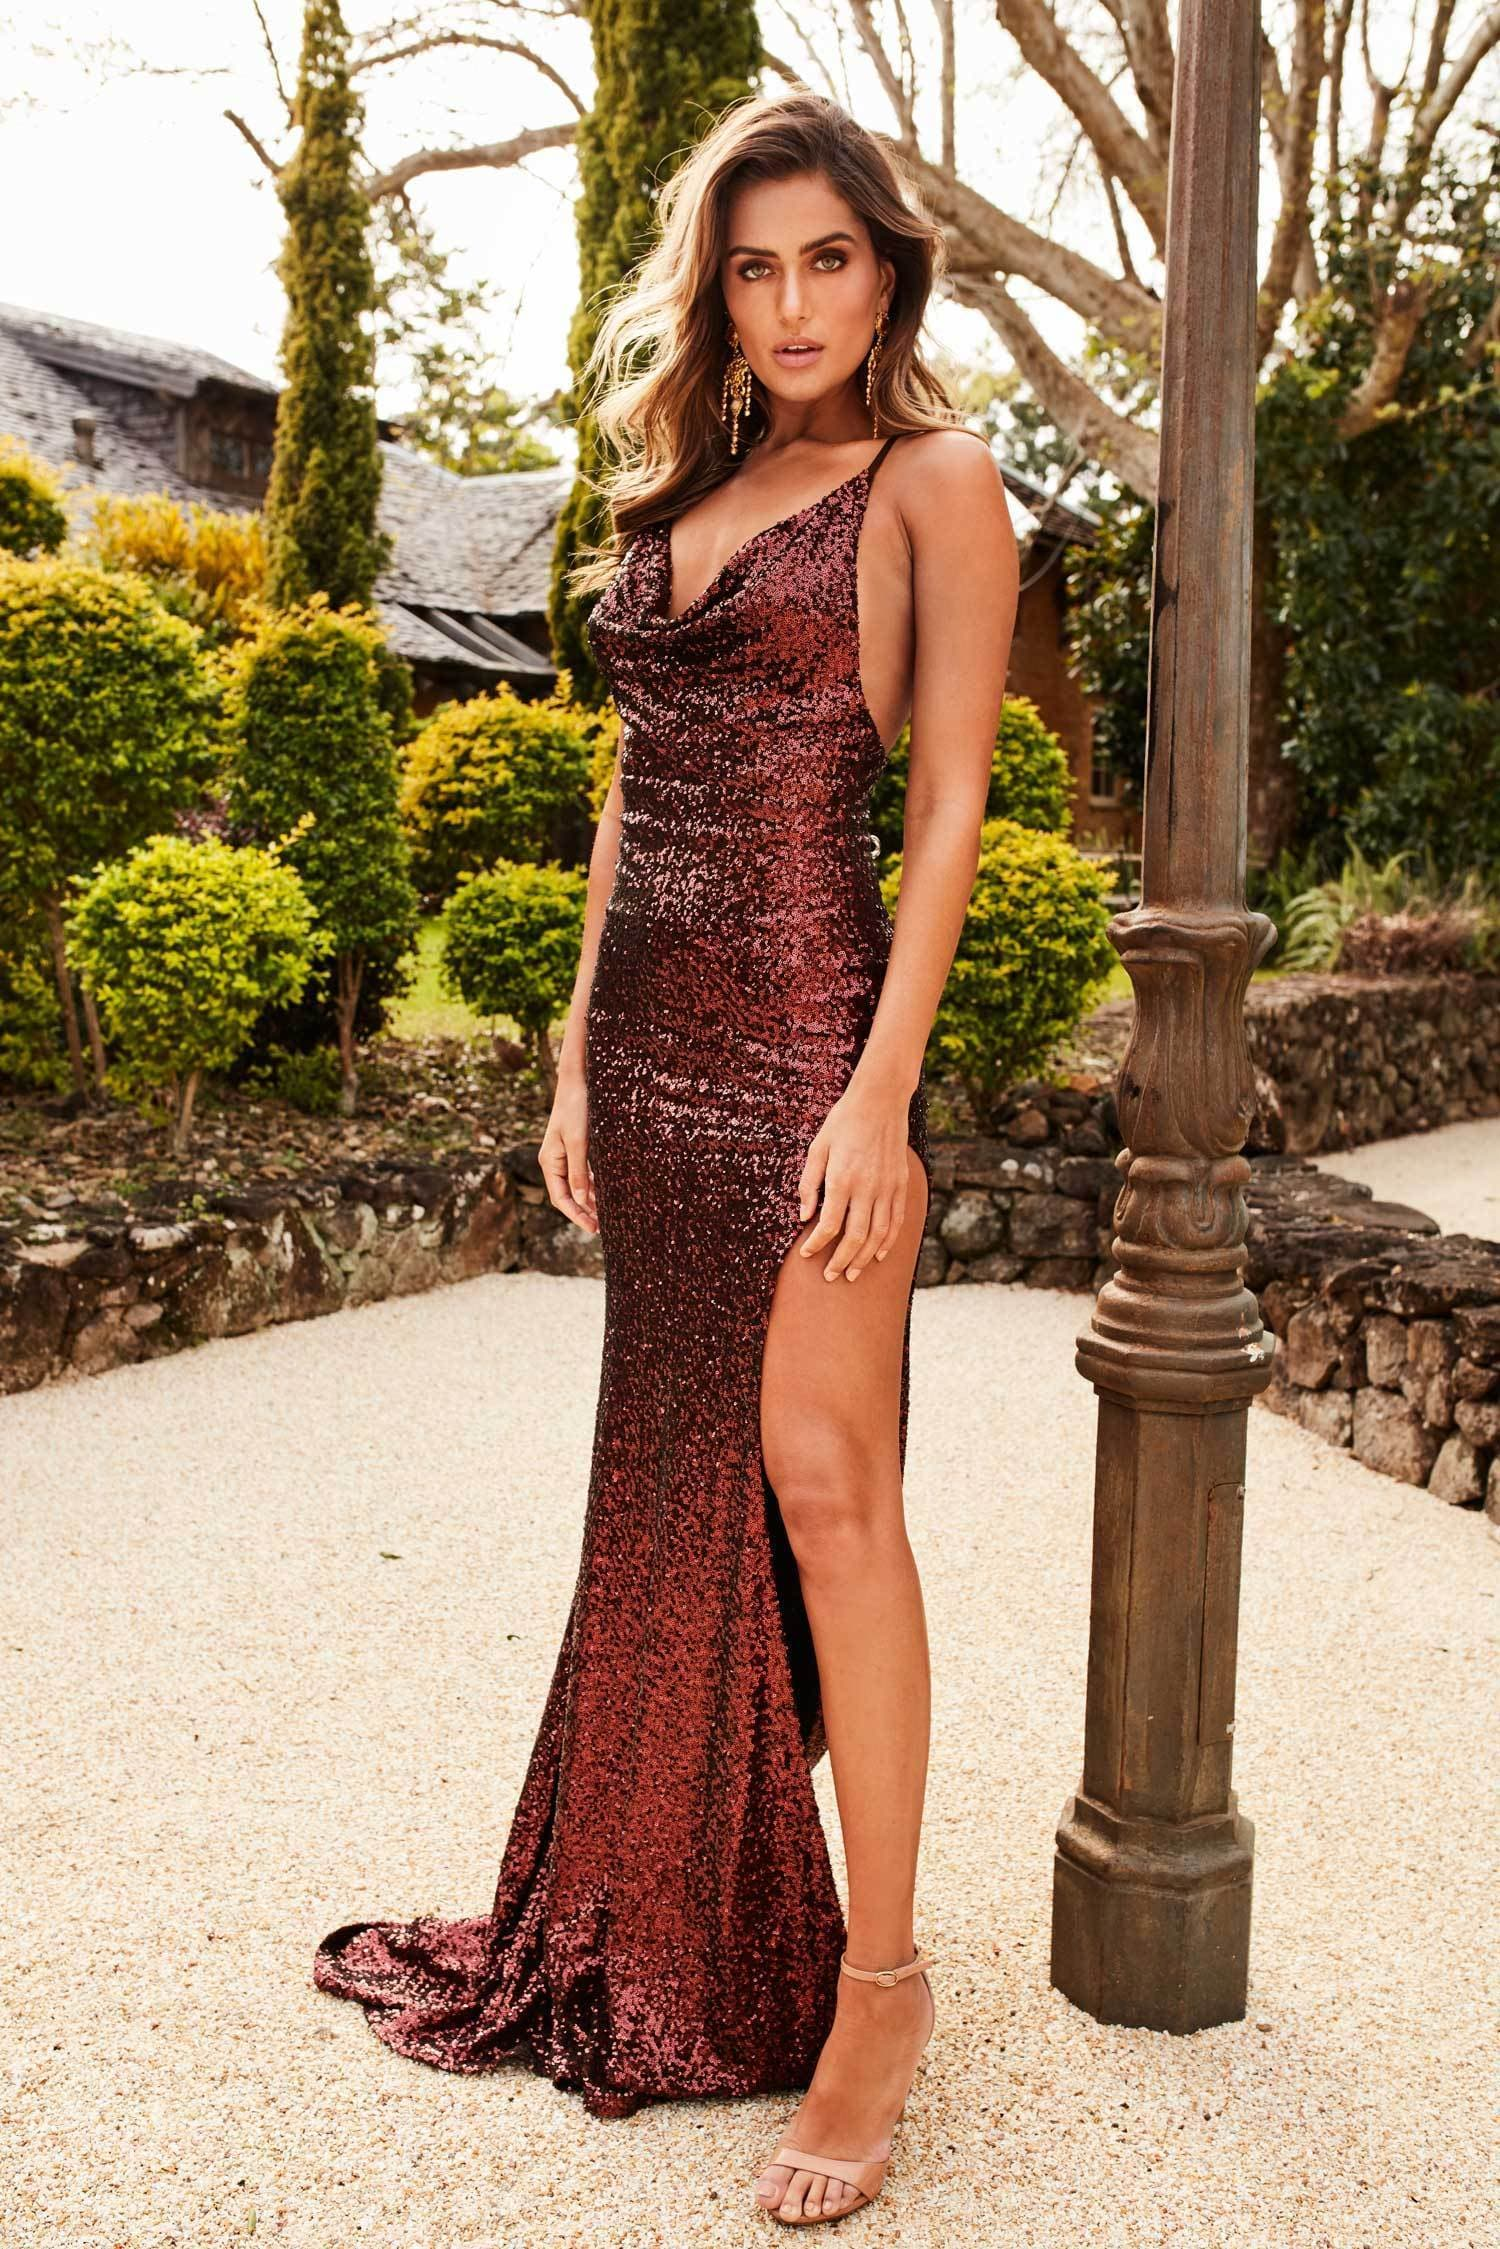 Andriana Sequins Gown - Chocolate Brown Evening Dress